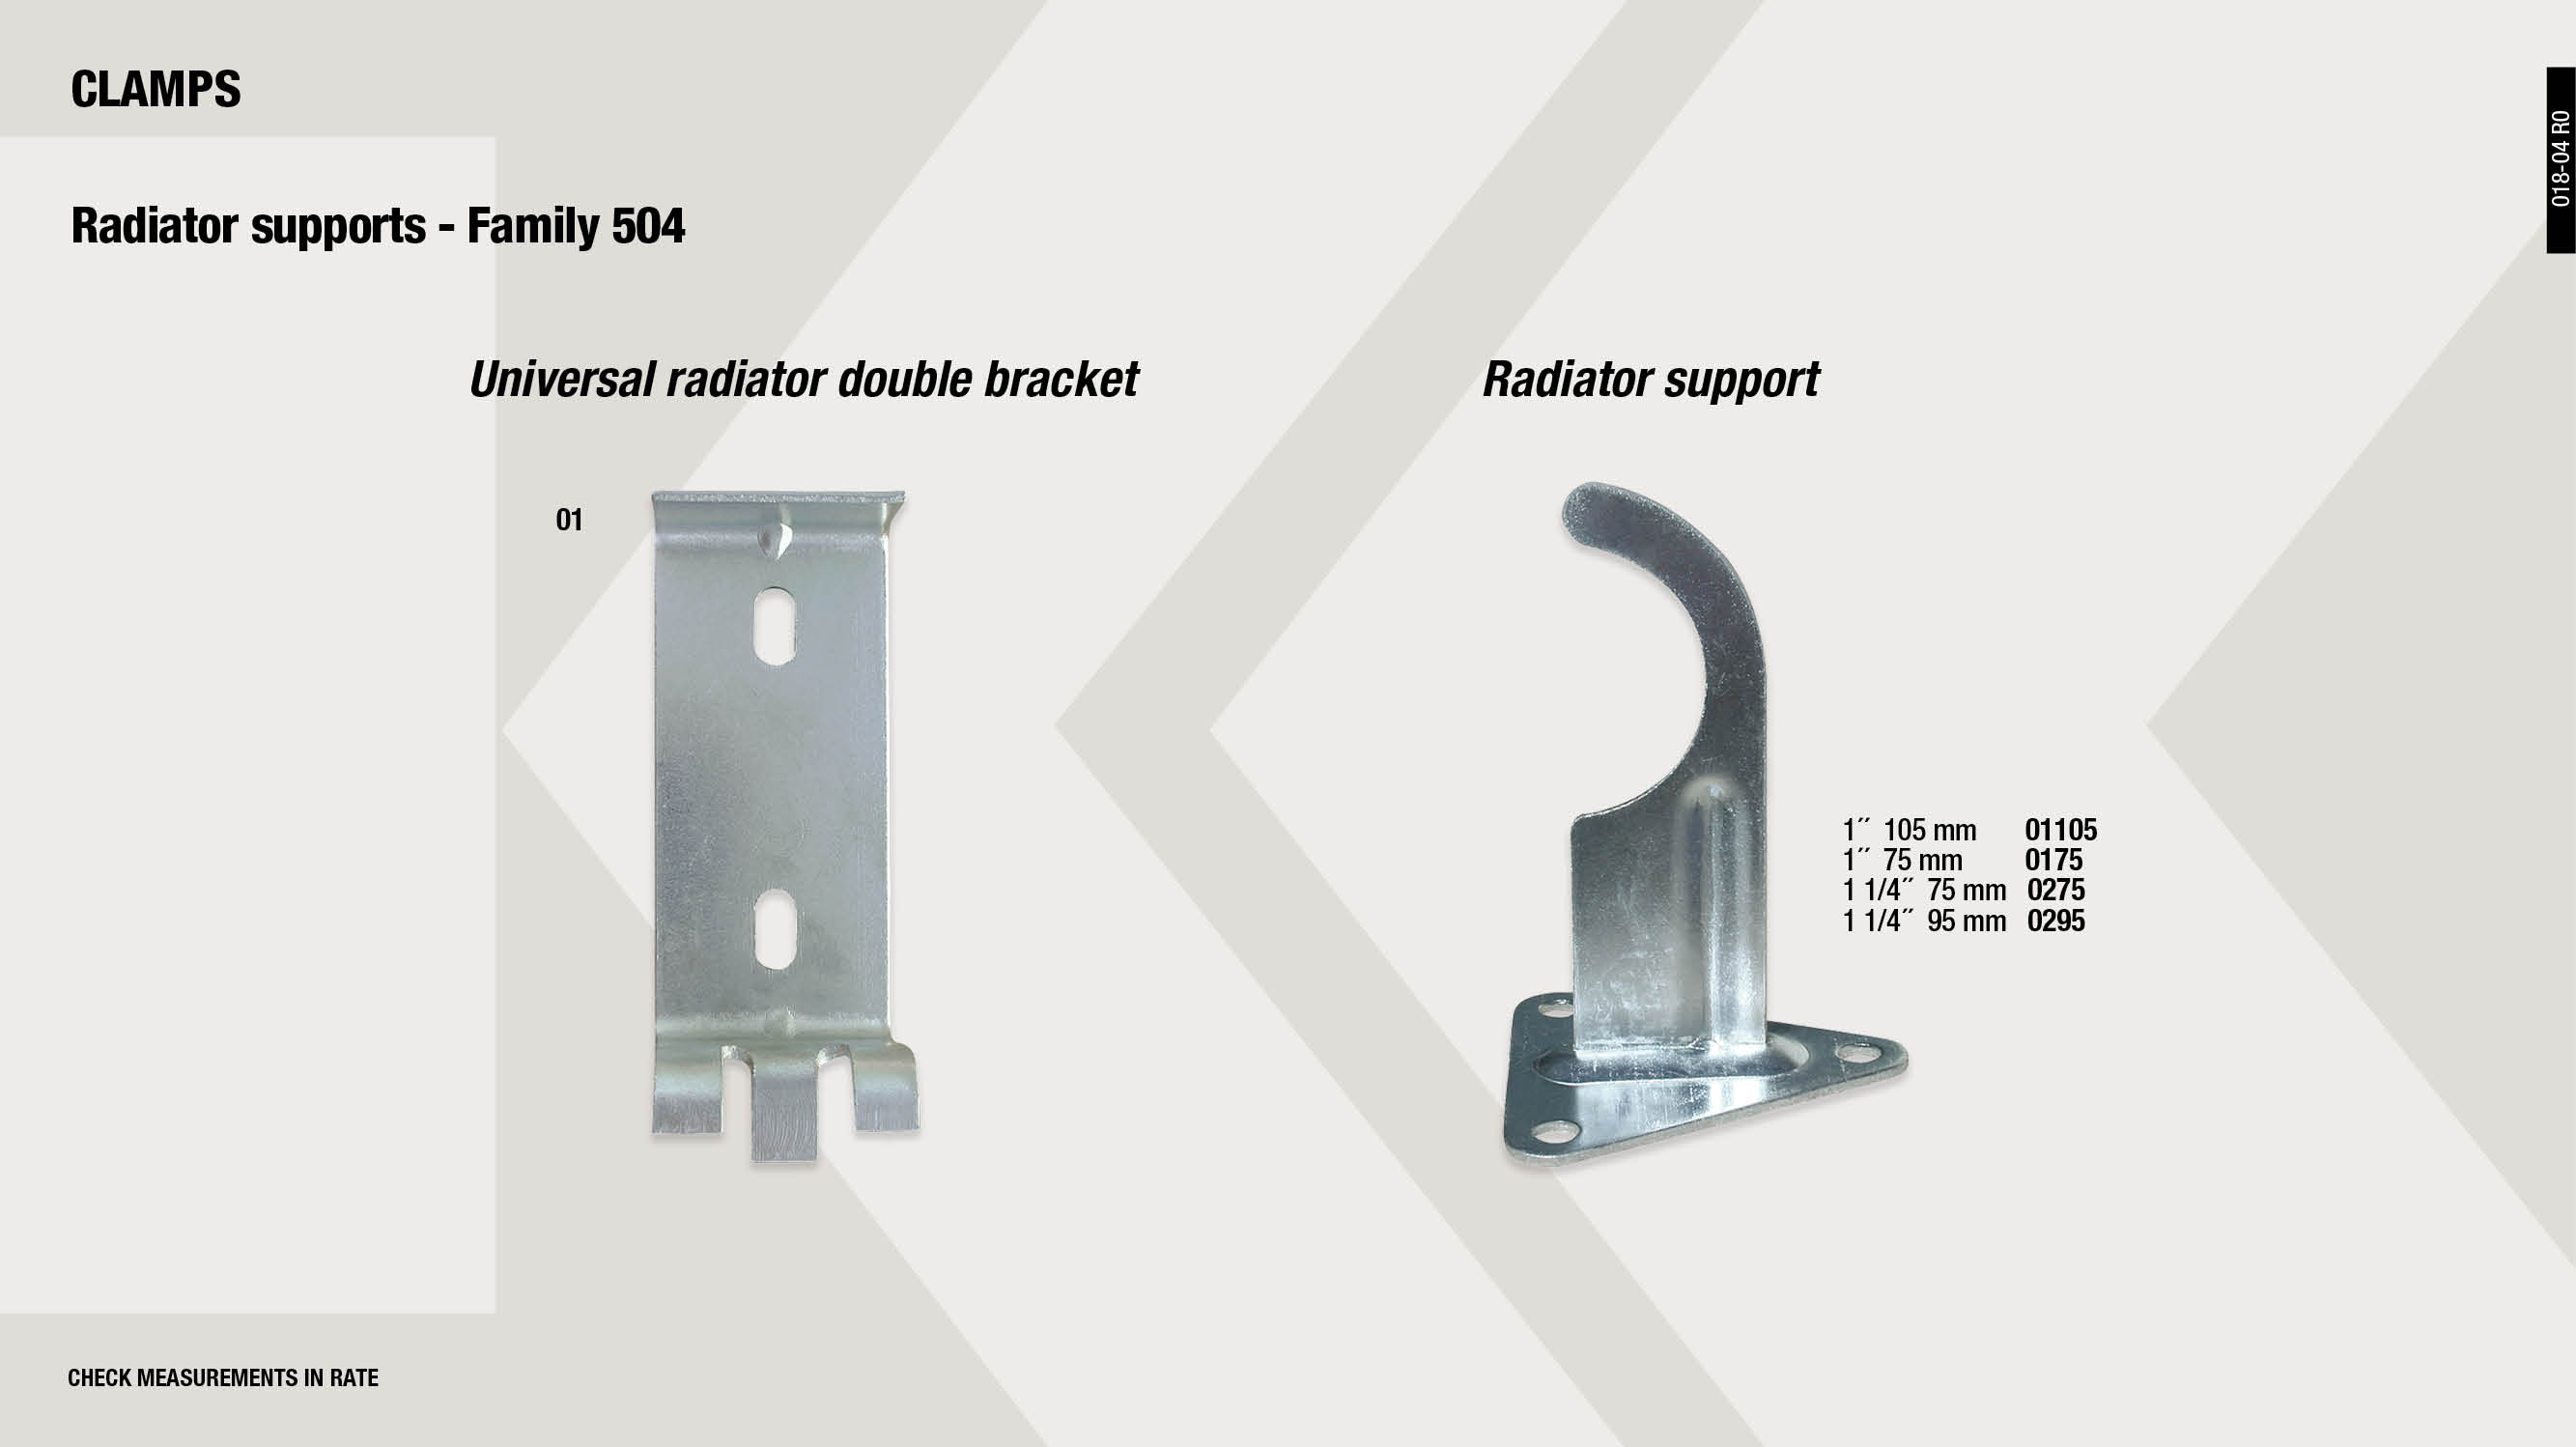 RADIATOR SUPPORT 1 1/4''95MM                                ,  UNIVERSAL RADIATOR DOUBLE CLAW                              ,  RADIATOR SUPPORT 1'75MM                                     ,  RADIATOR SUPPORT12''105MM                                   ,  RADIATOR SUPPORT 1 1/4'' 75MM                               ,